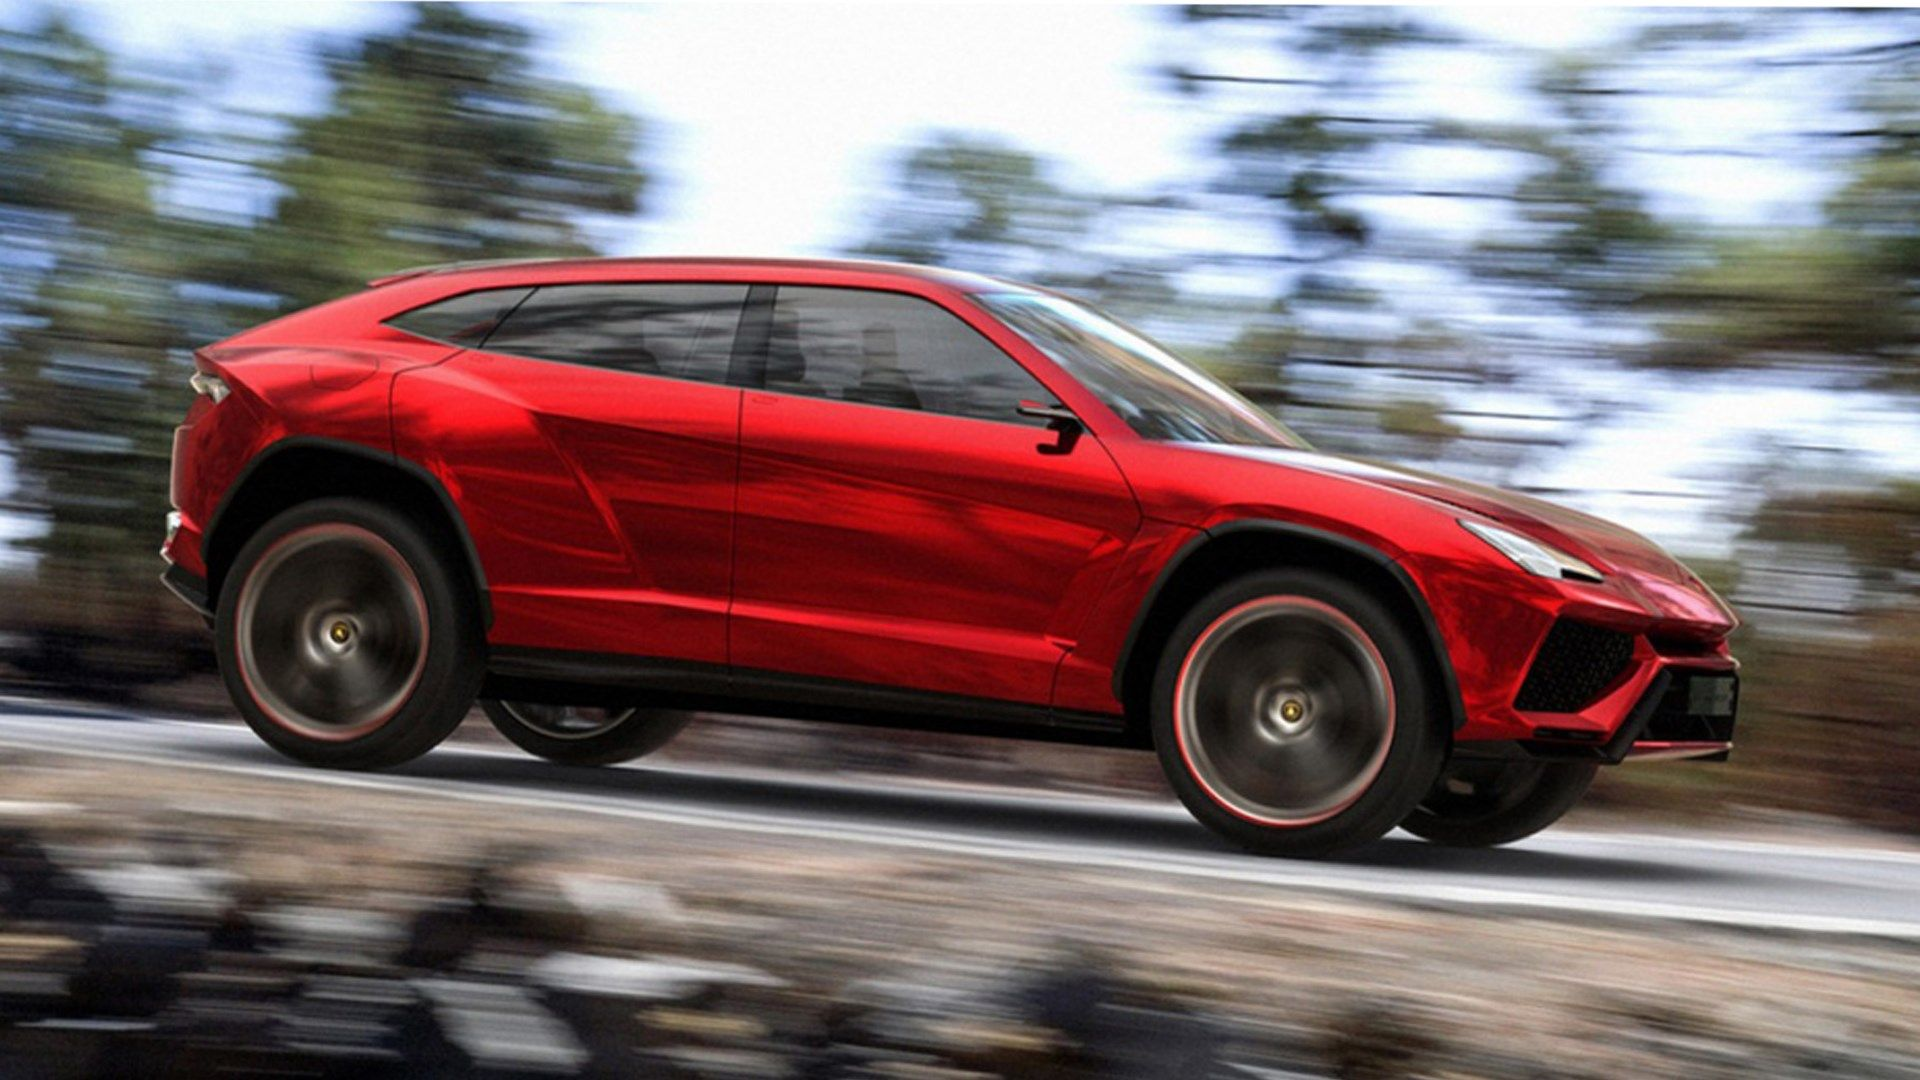 Lamborghini Urus Hd Background Ololoshenka Pinterest Coole